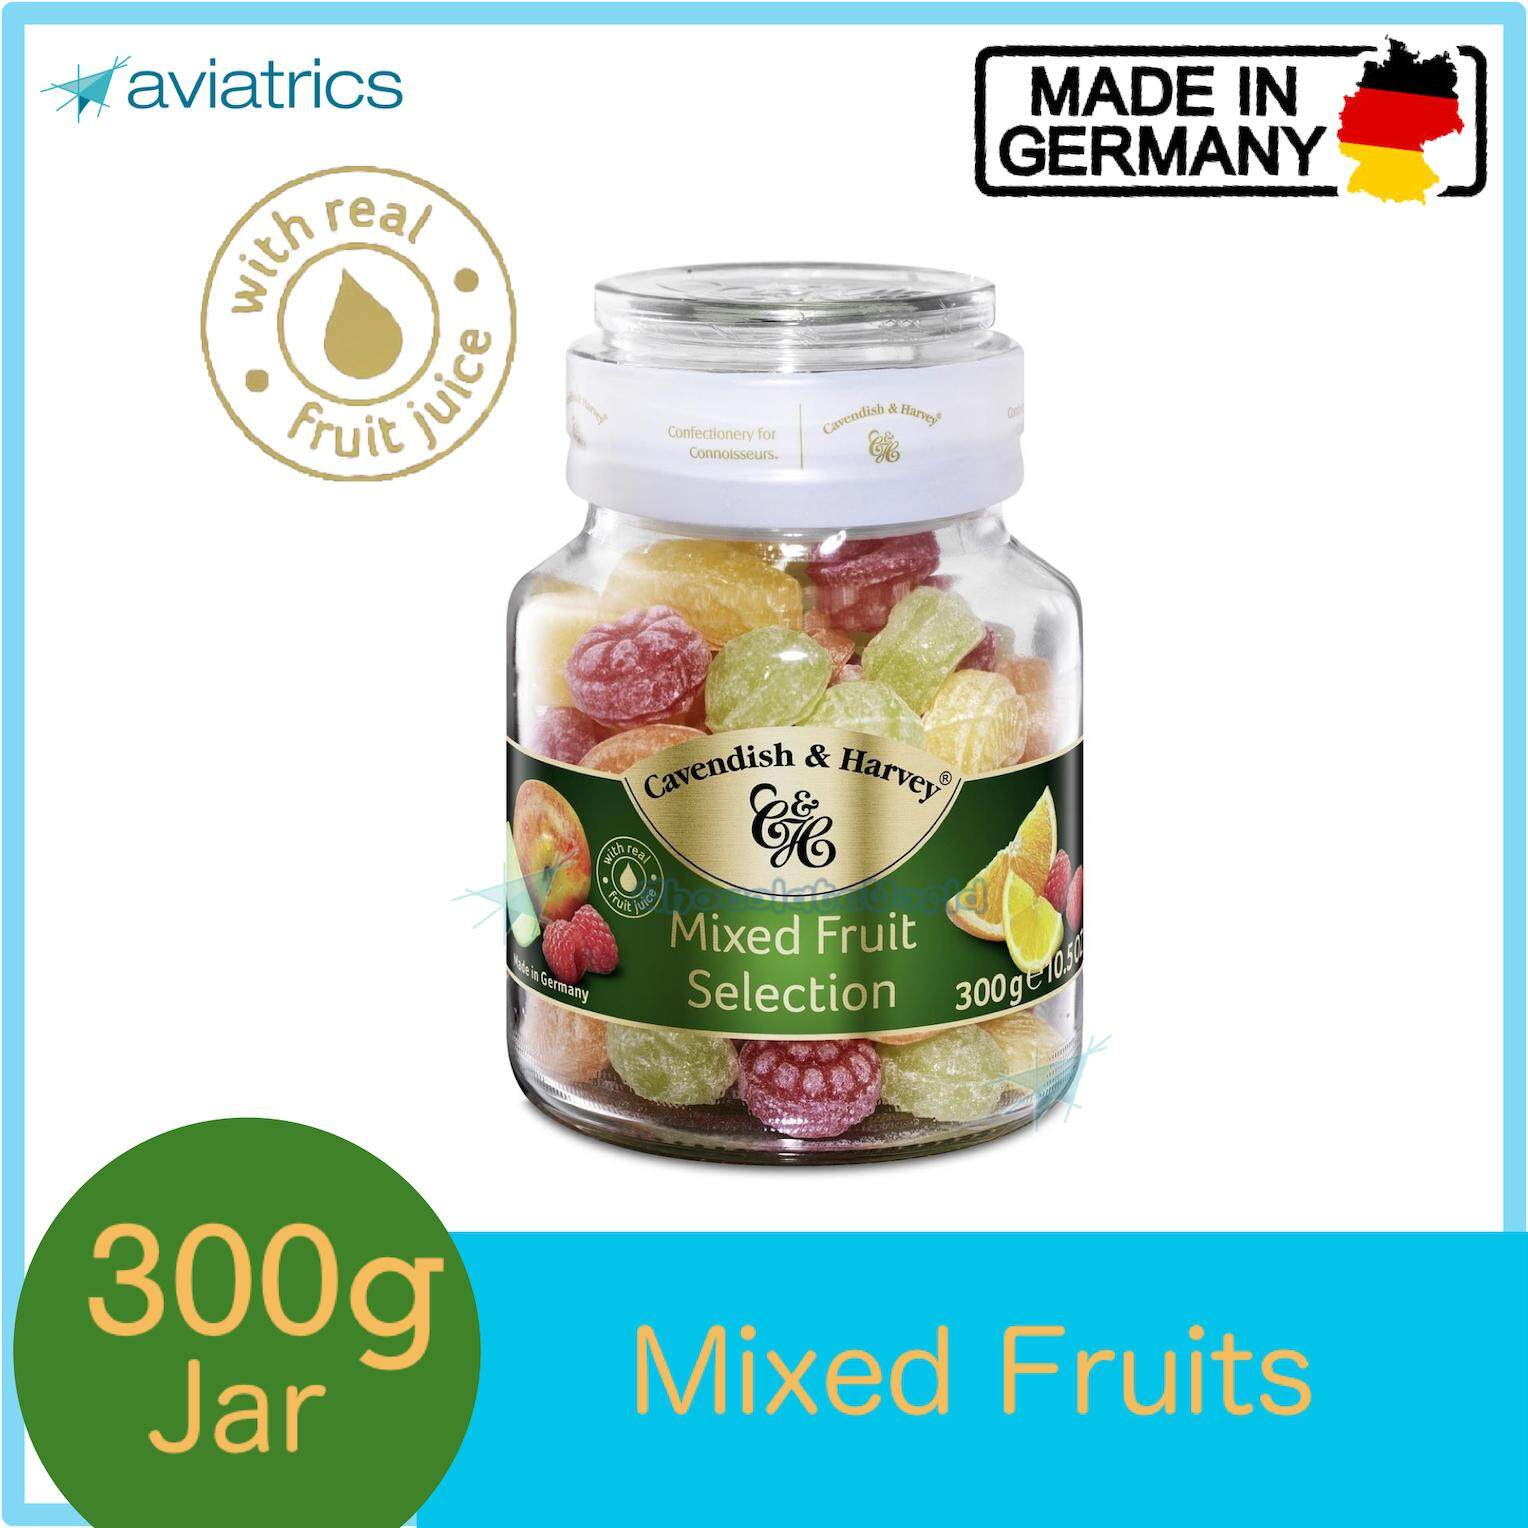 Cavendish Harvey Mixed Fruit Selection Fruity Shape Drops 300g (Made in Germany)